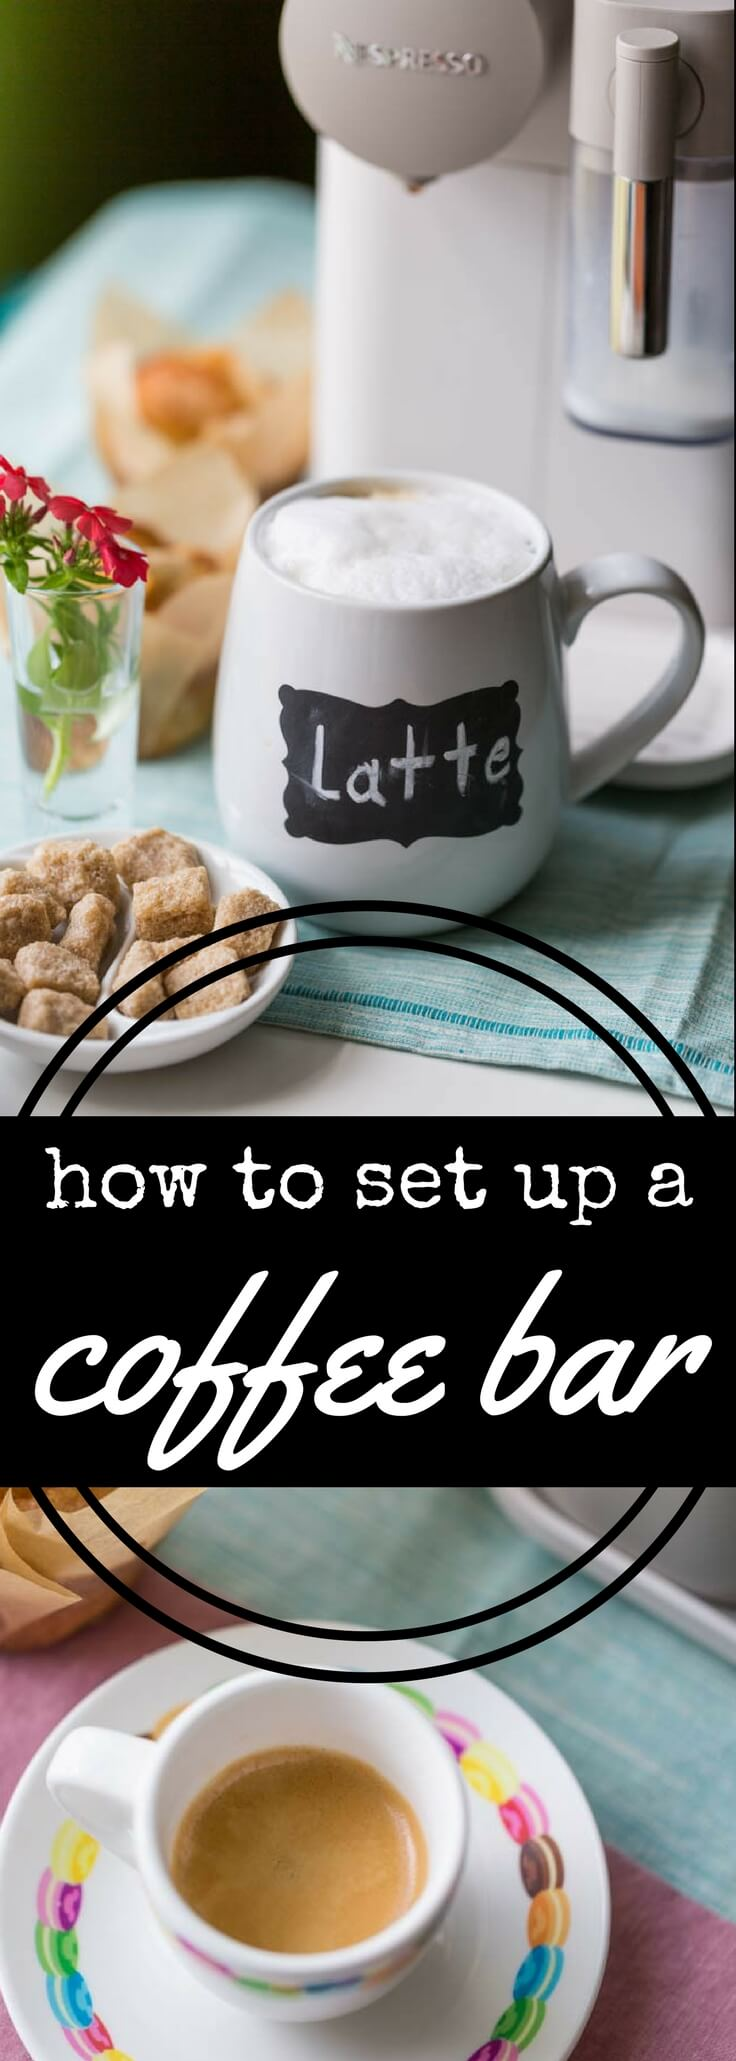 Making a home coffee bar is easier than you think!  Here\'s how to set up a beautiful home coffee station so you can enjoy coffeehouse-style drinks in the comfort of your own home.